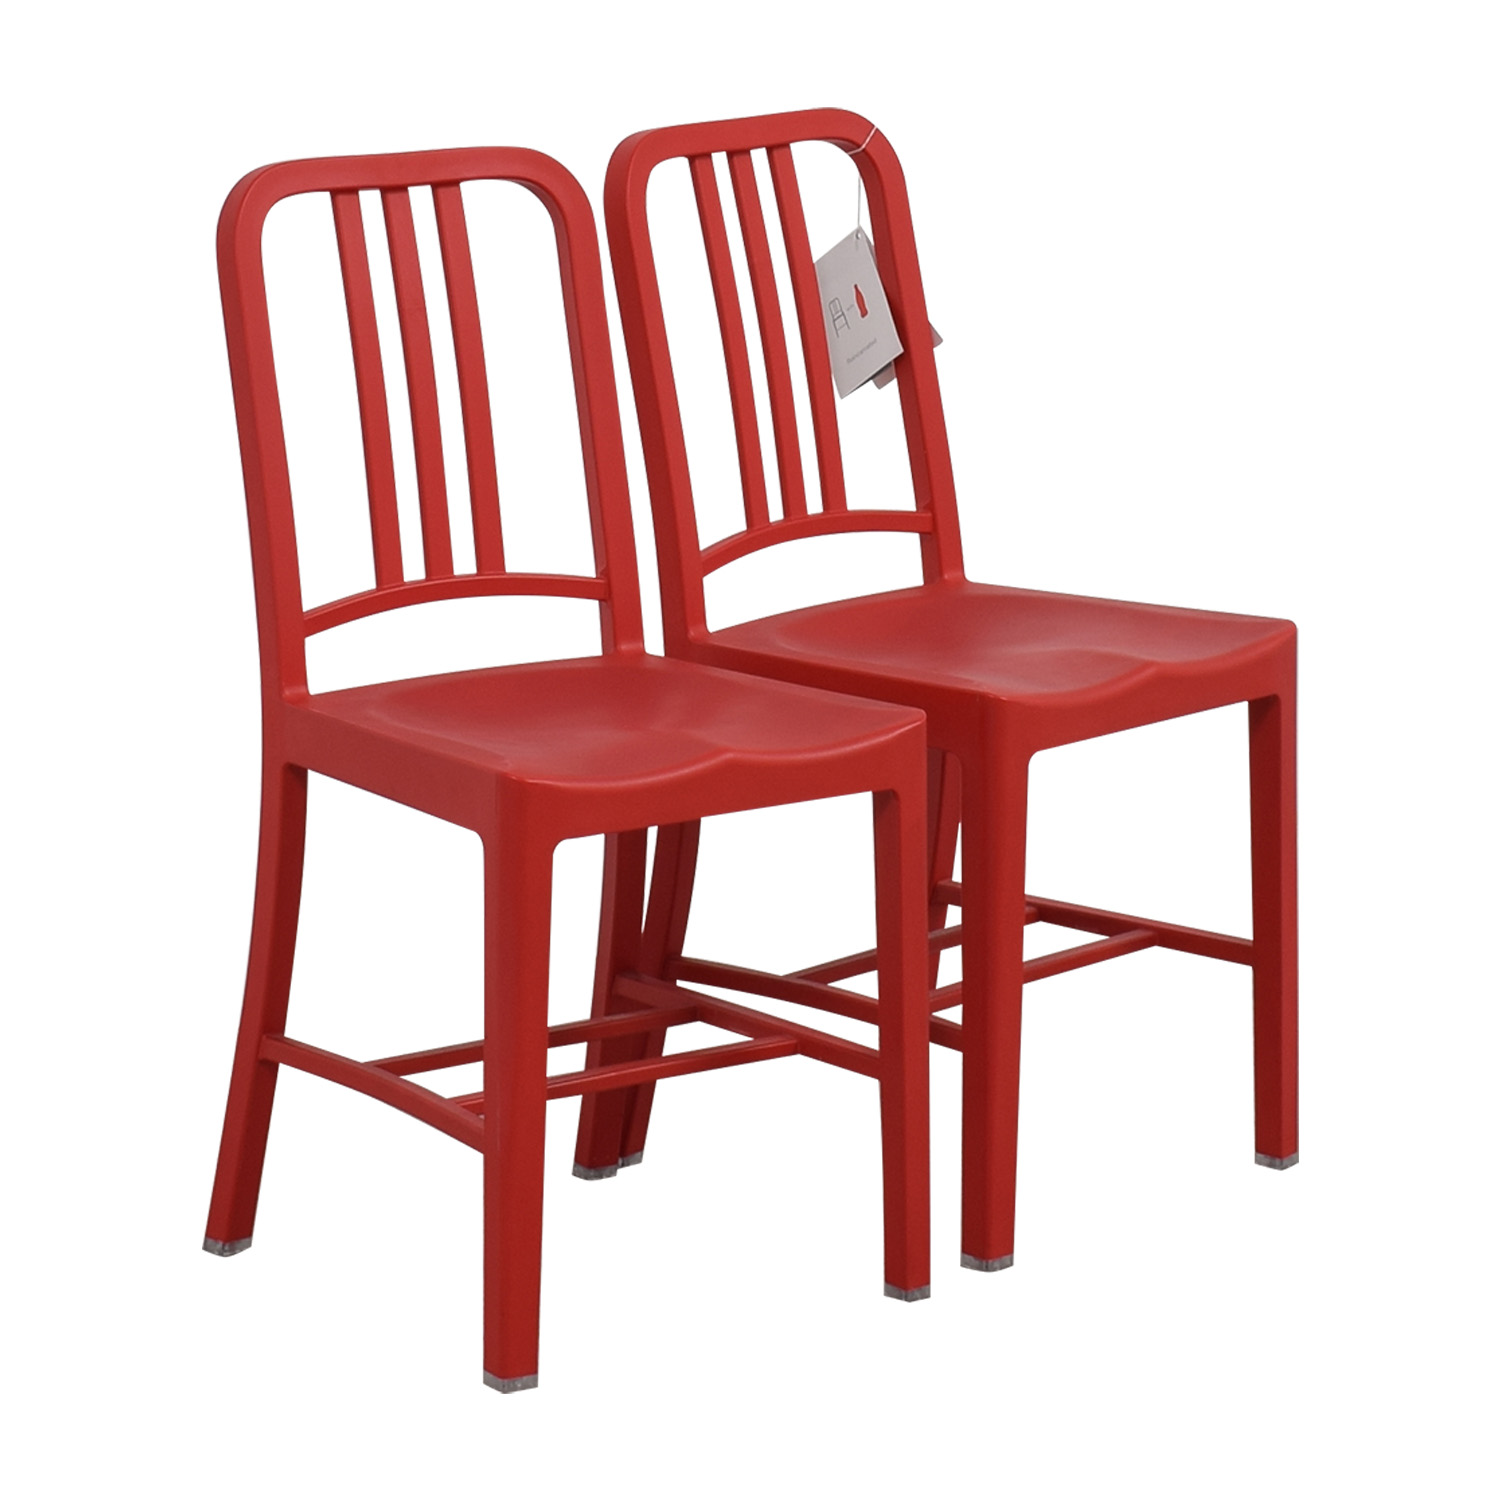 Emeco 111 Navy Recycled Red Chairs Emeco